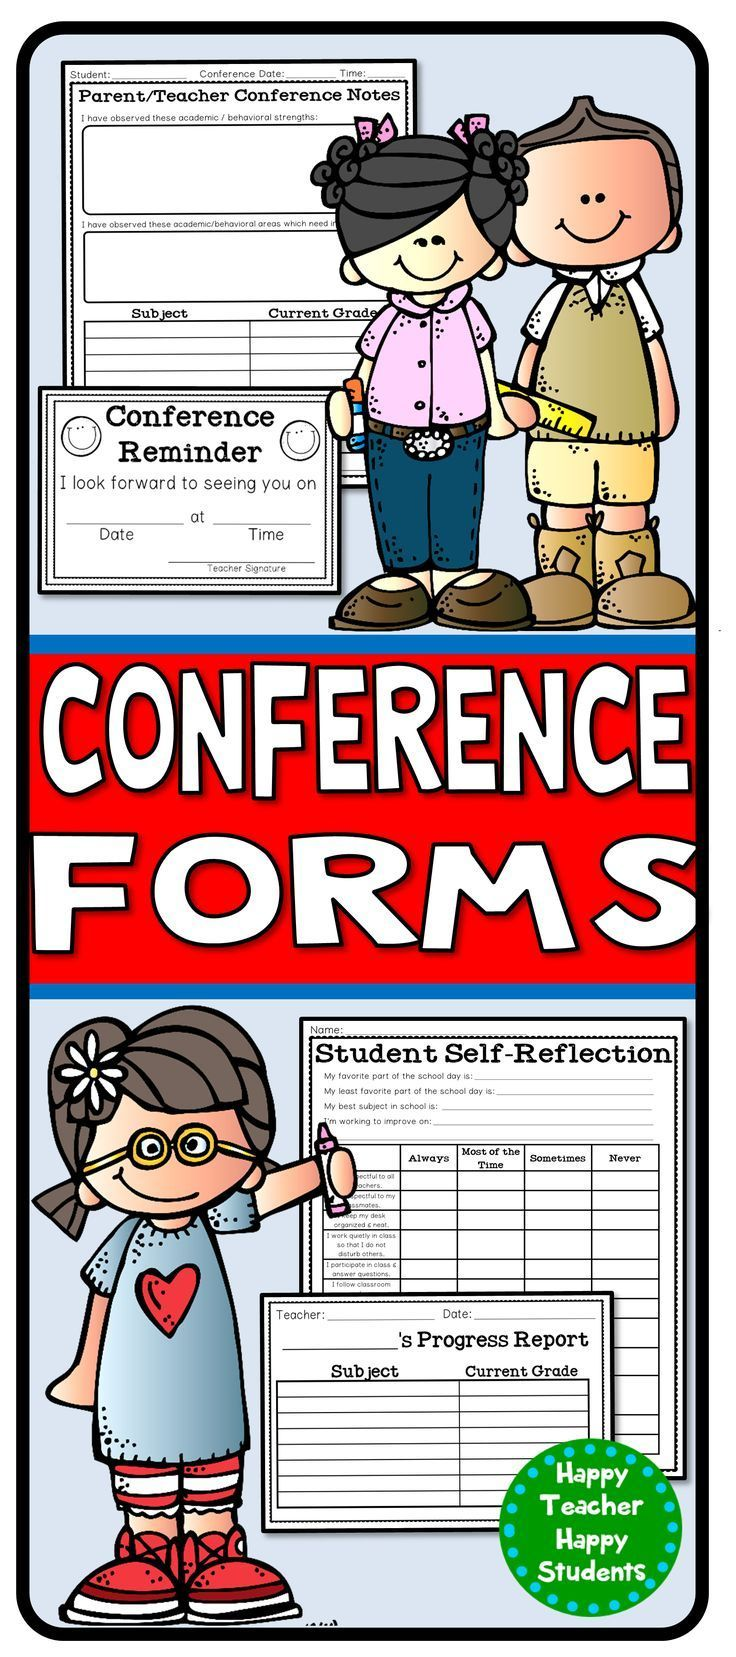 Parent Teacher Conference Form Bundle: 5 Forms Included And You Save 40%